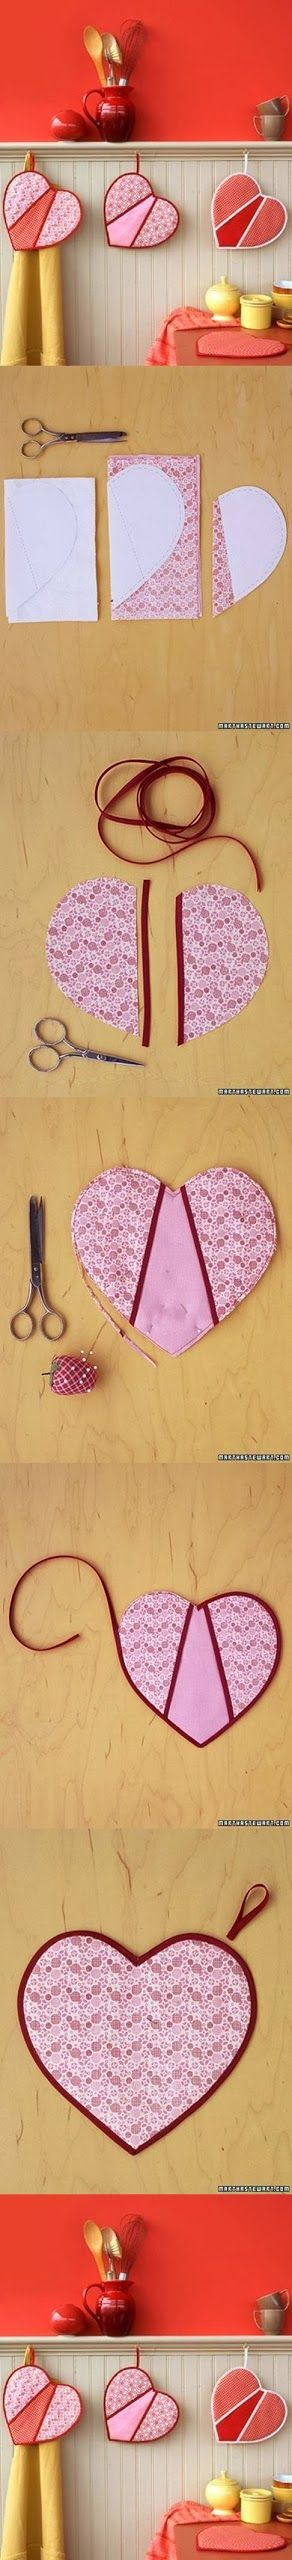 Heart Shaped Pot Holders tutorial::1 of 1